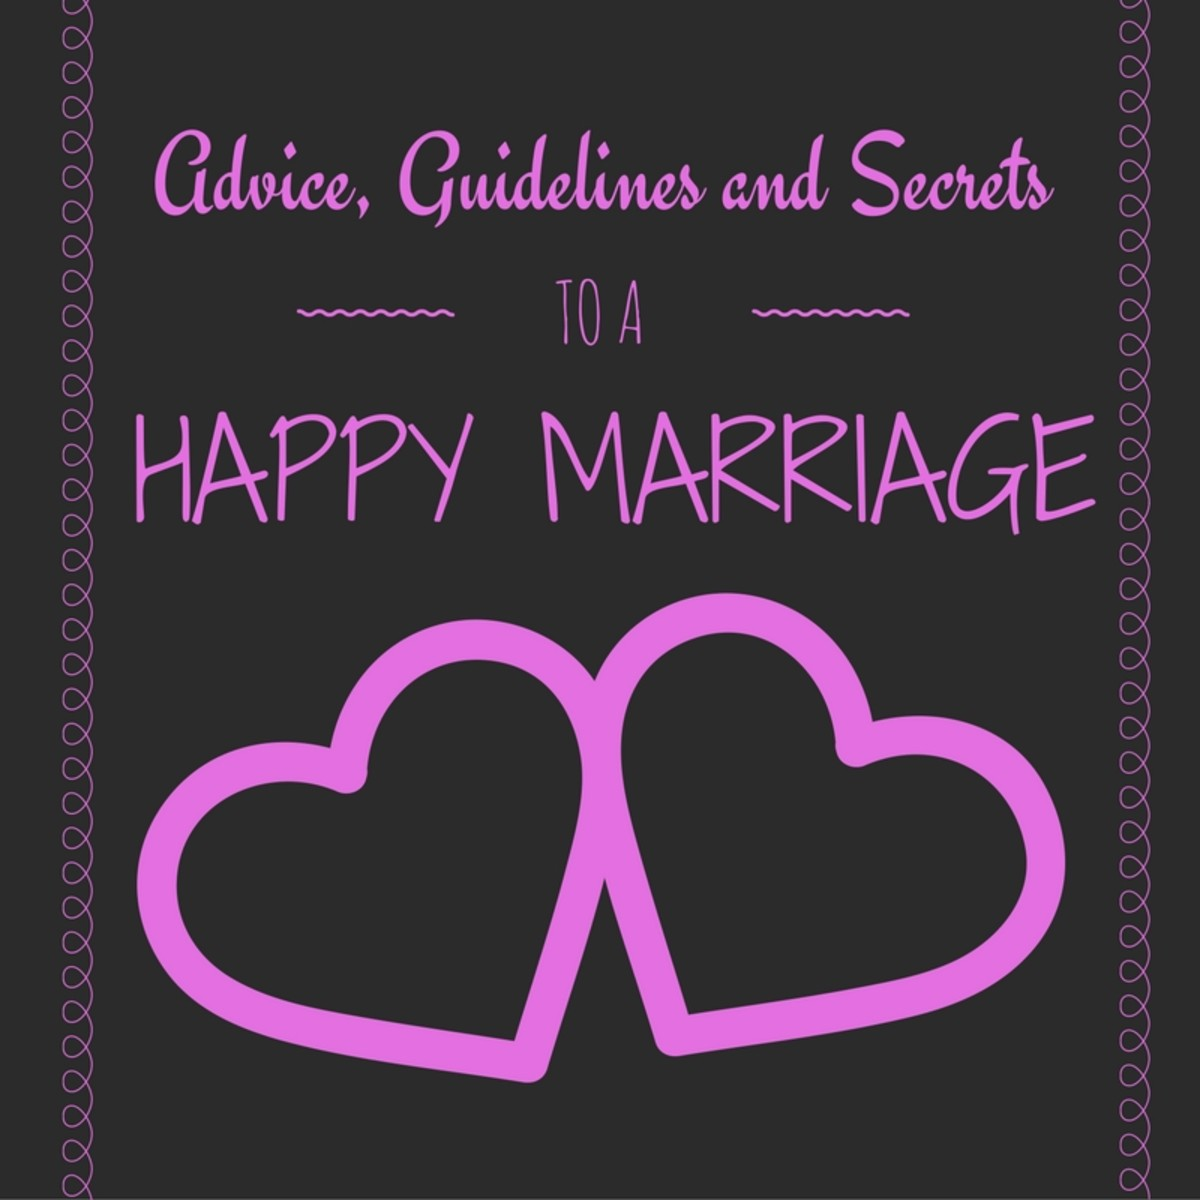 relationship-advice-best-rules-for-a-happy-marriage-and-how-to-have-a-good-marriage